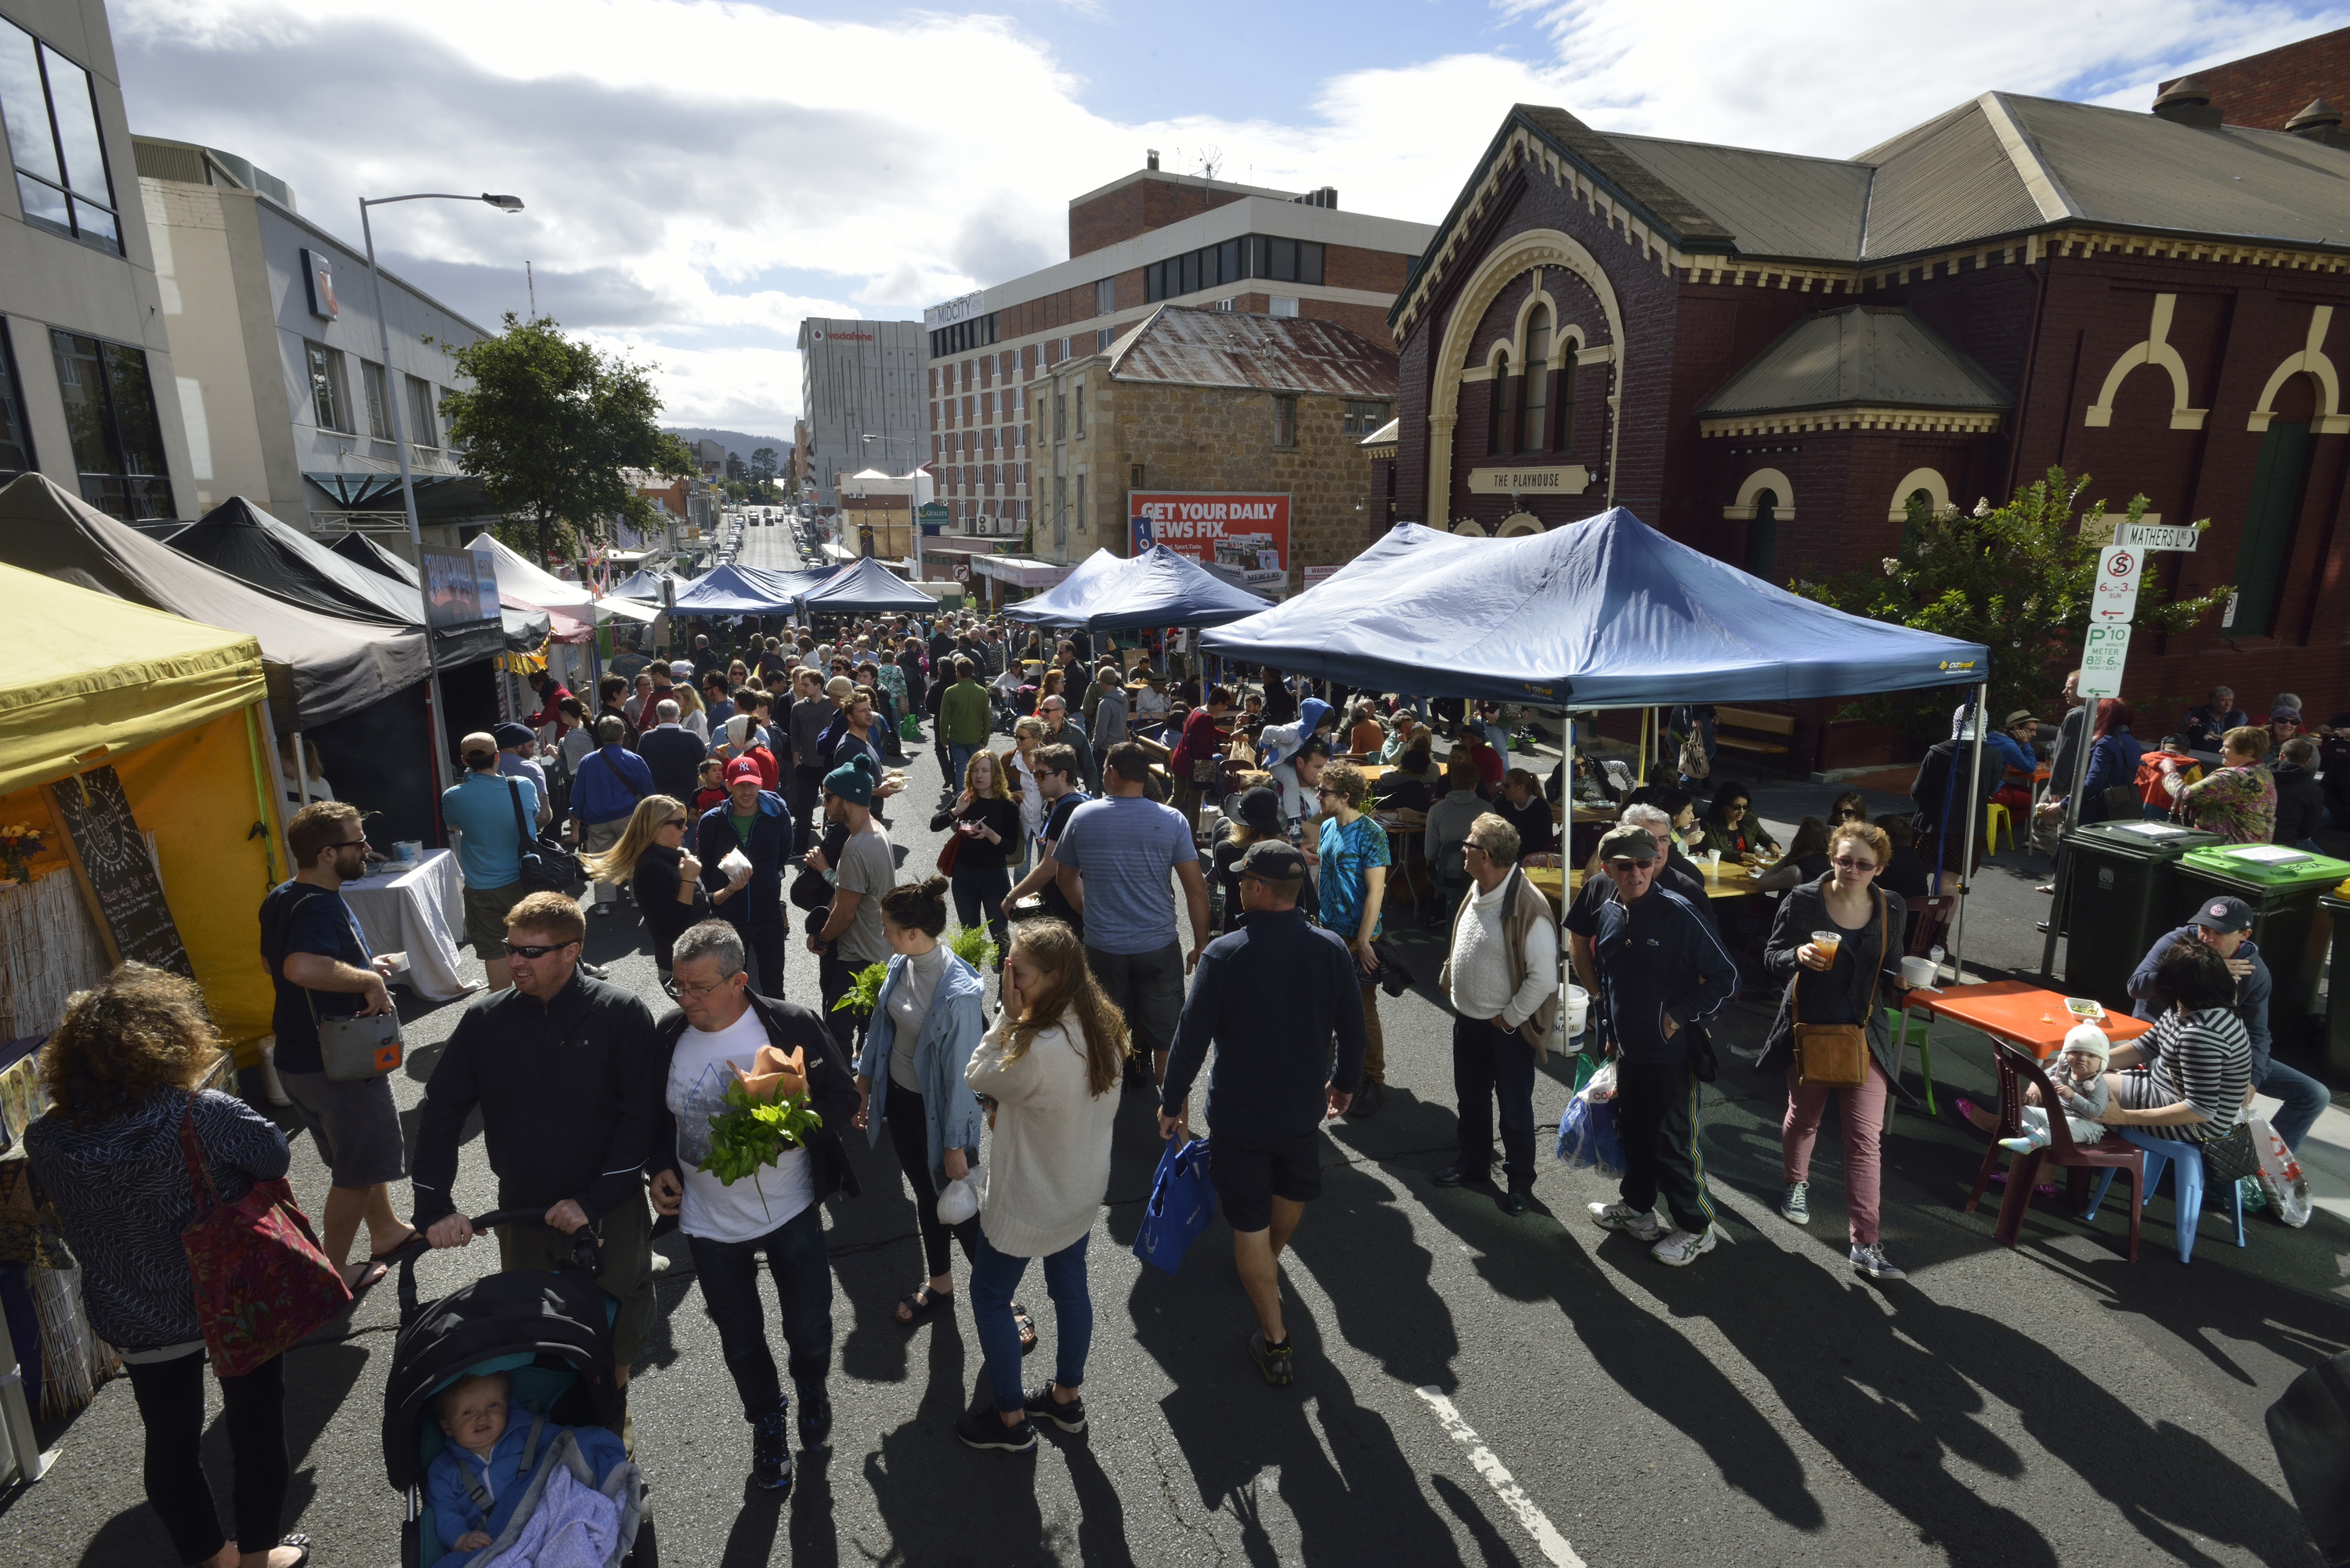 Shoppers at outside market in Hobart